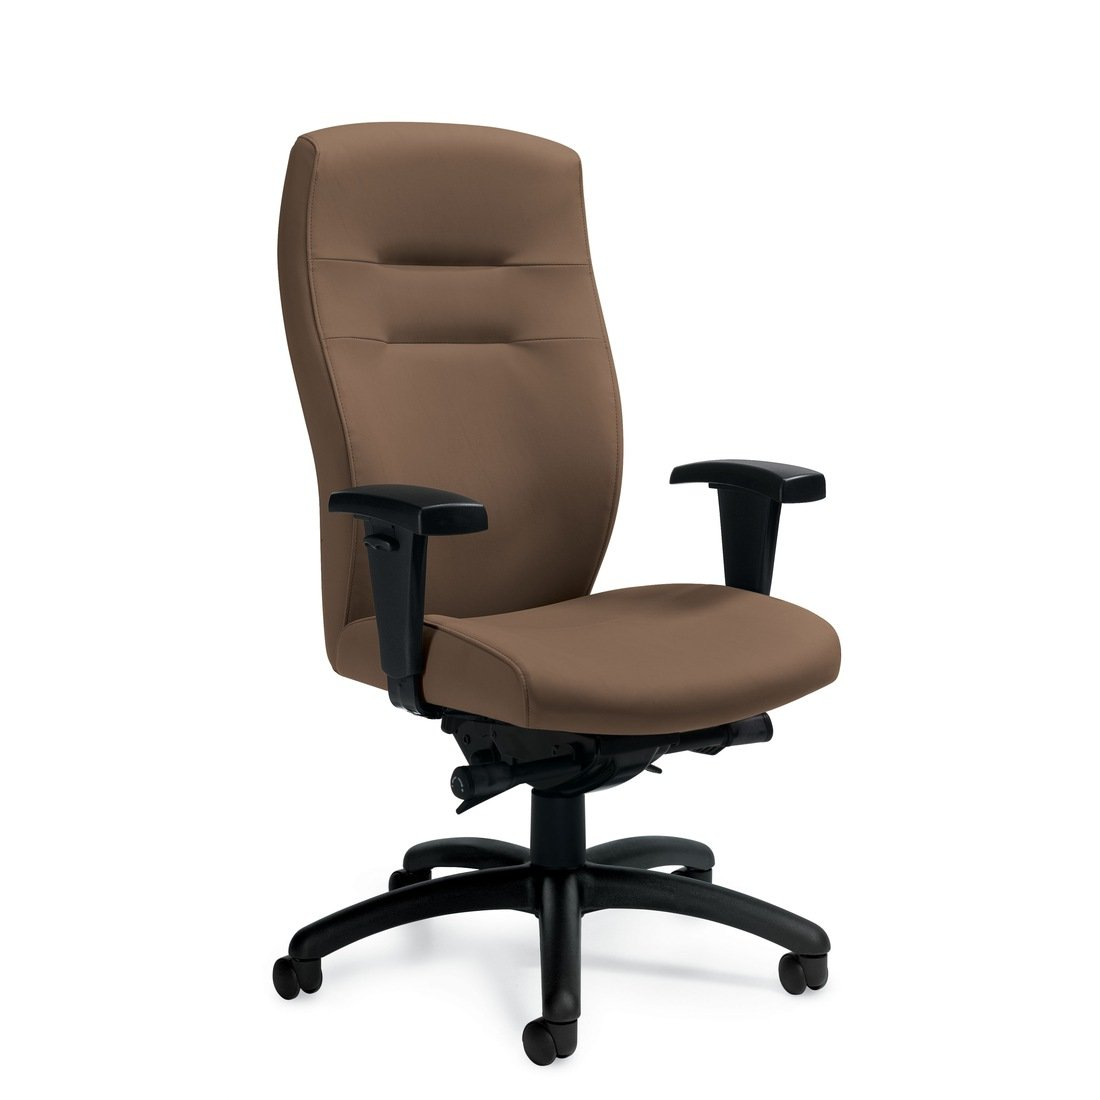 Synopsis high back synchro-tilter chair, model 5080LM-0. This chair has been placed on a white background.